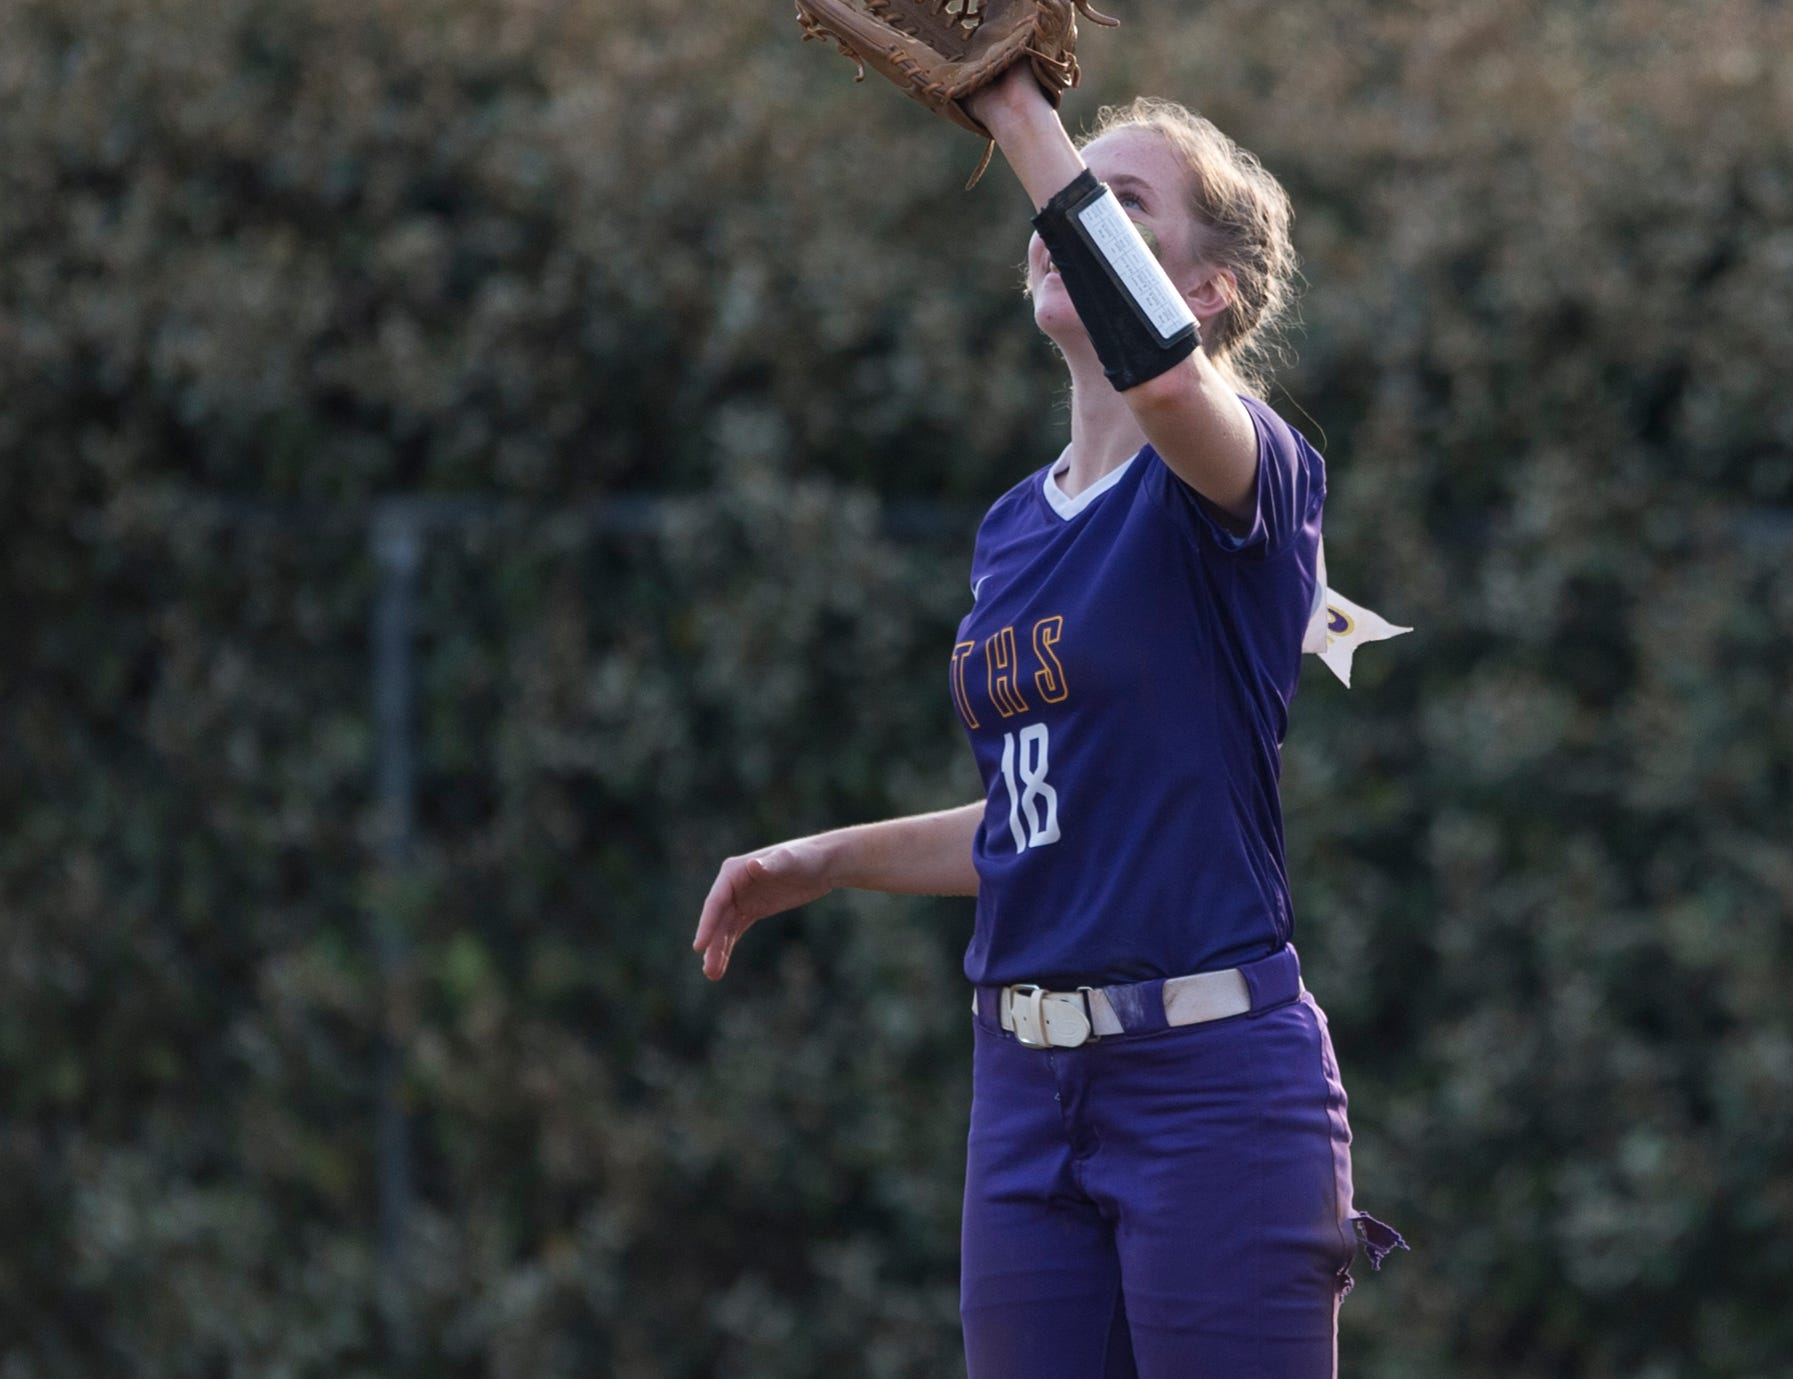 Tallassee's Chloe Baynes (18) catches a pop fly in the outfield at Thompson Park in Montgomery, Ala., on Thursday, March 14, 2019. Tallassee defeated Brew Tech 7-0.